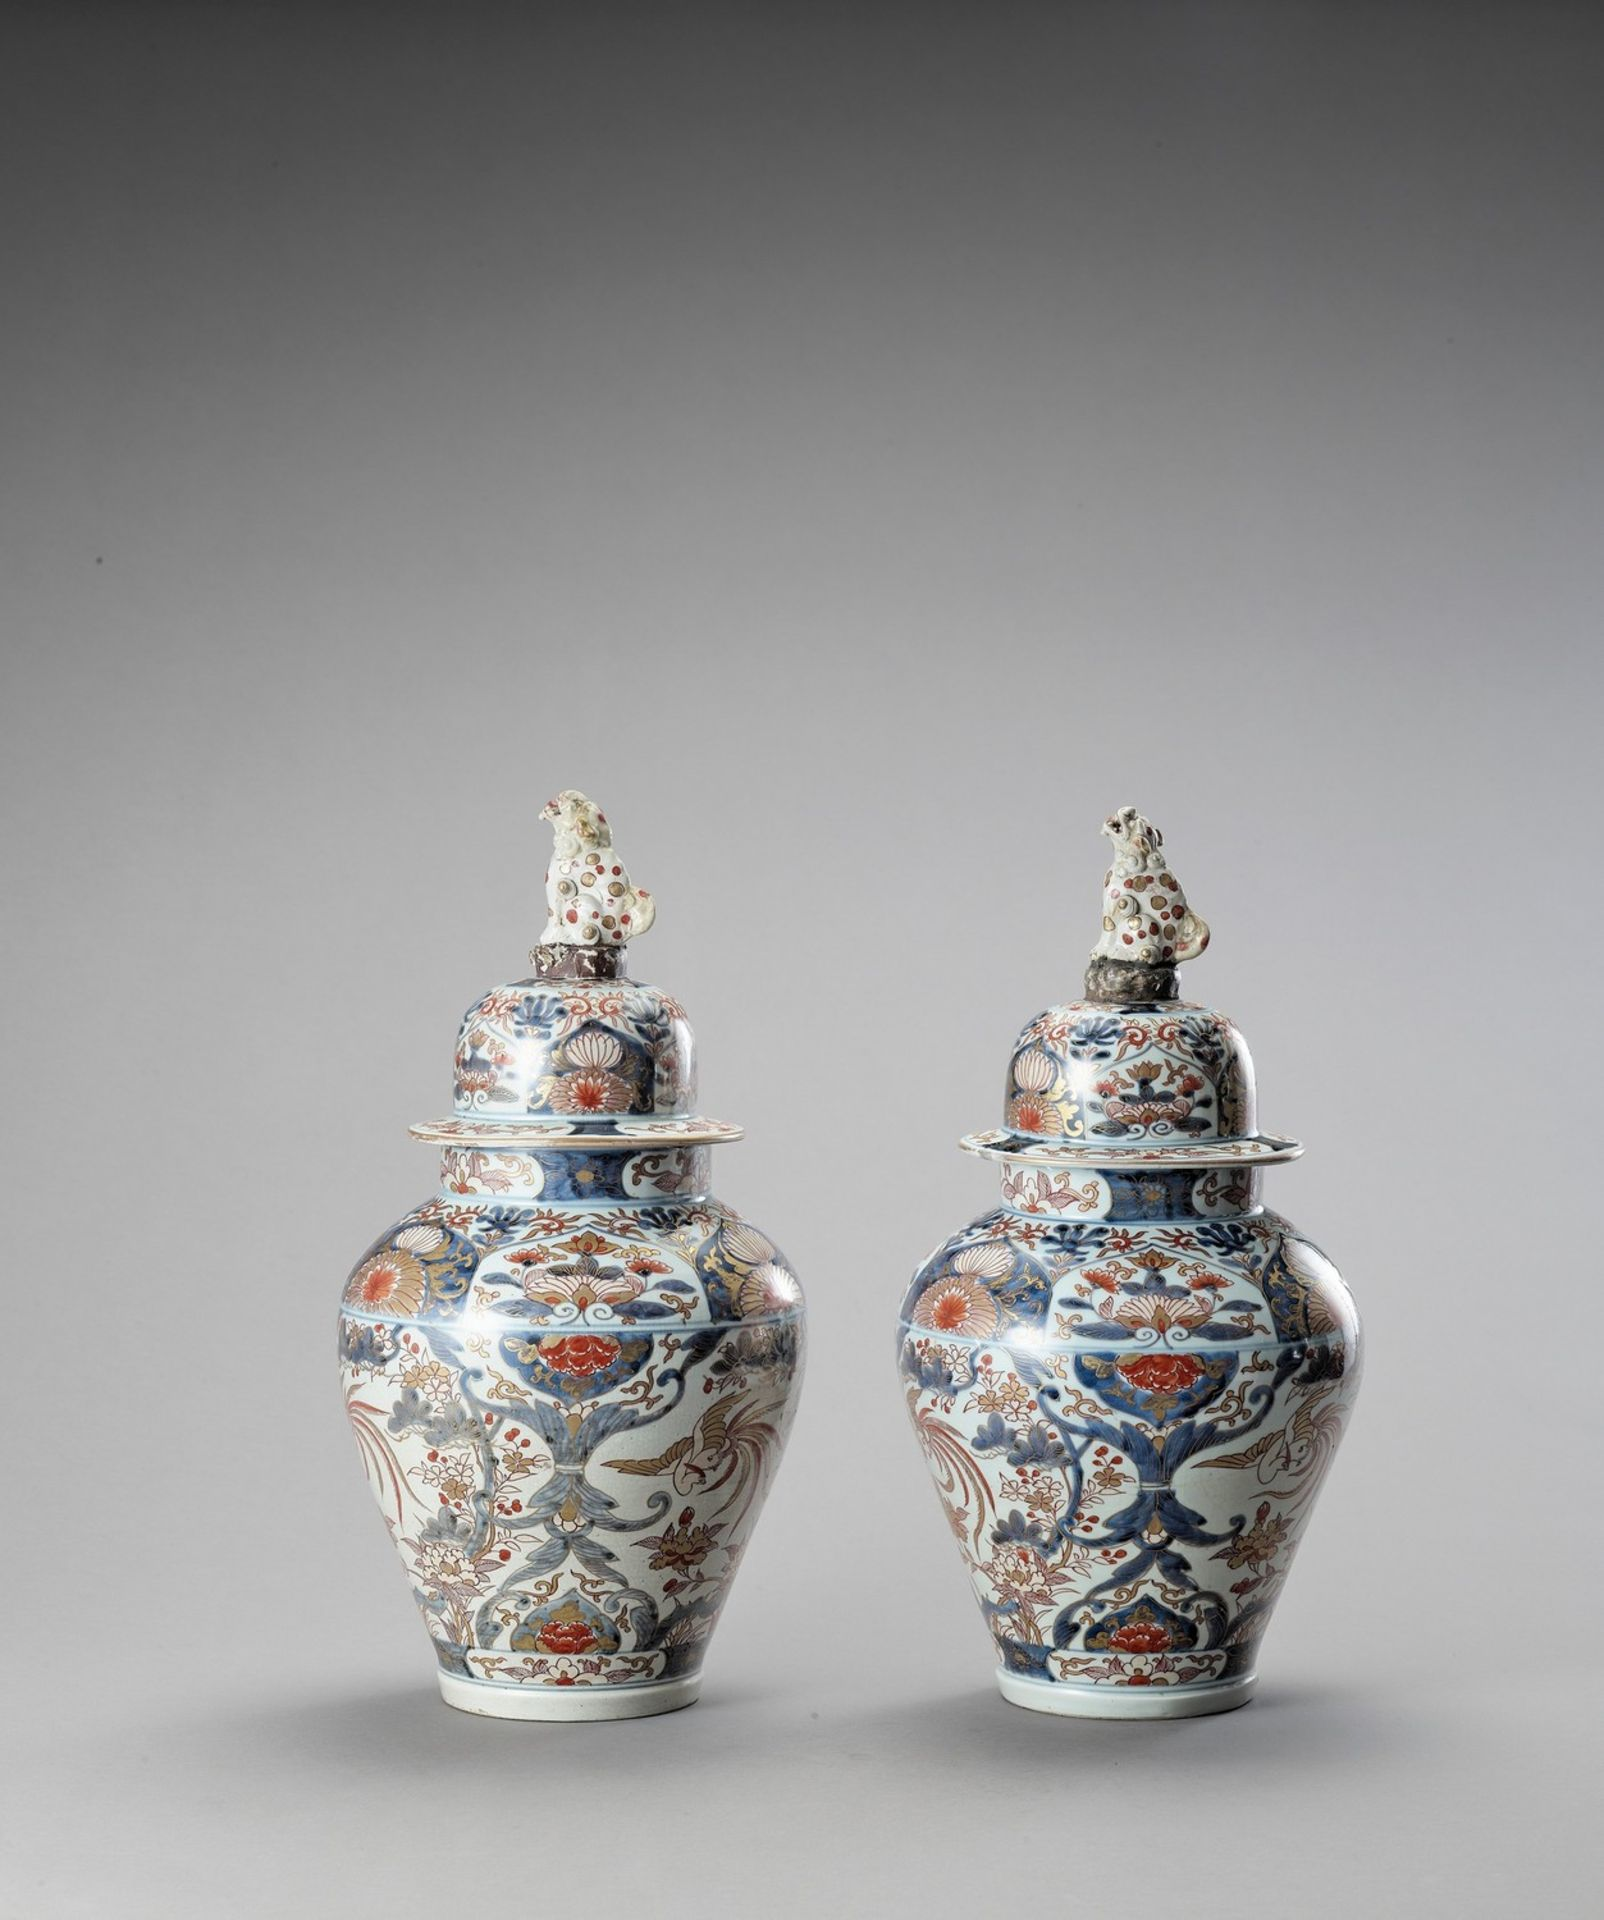 A LARGE PAIR OF IMARI PORCELAIN VASES AND COVERS - Image 2 of 6